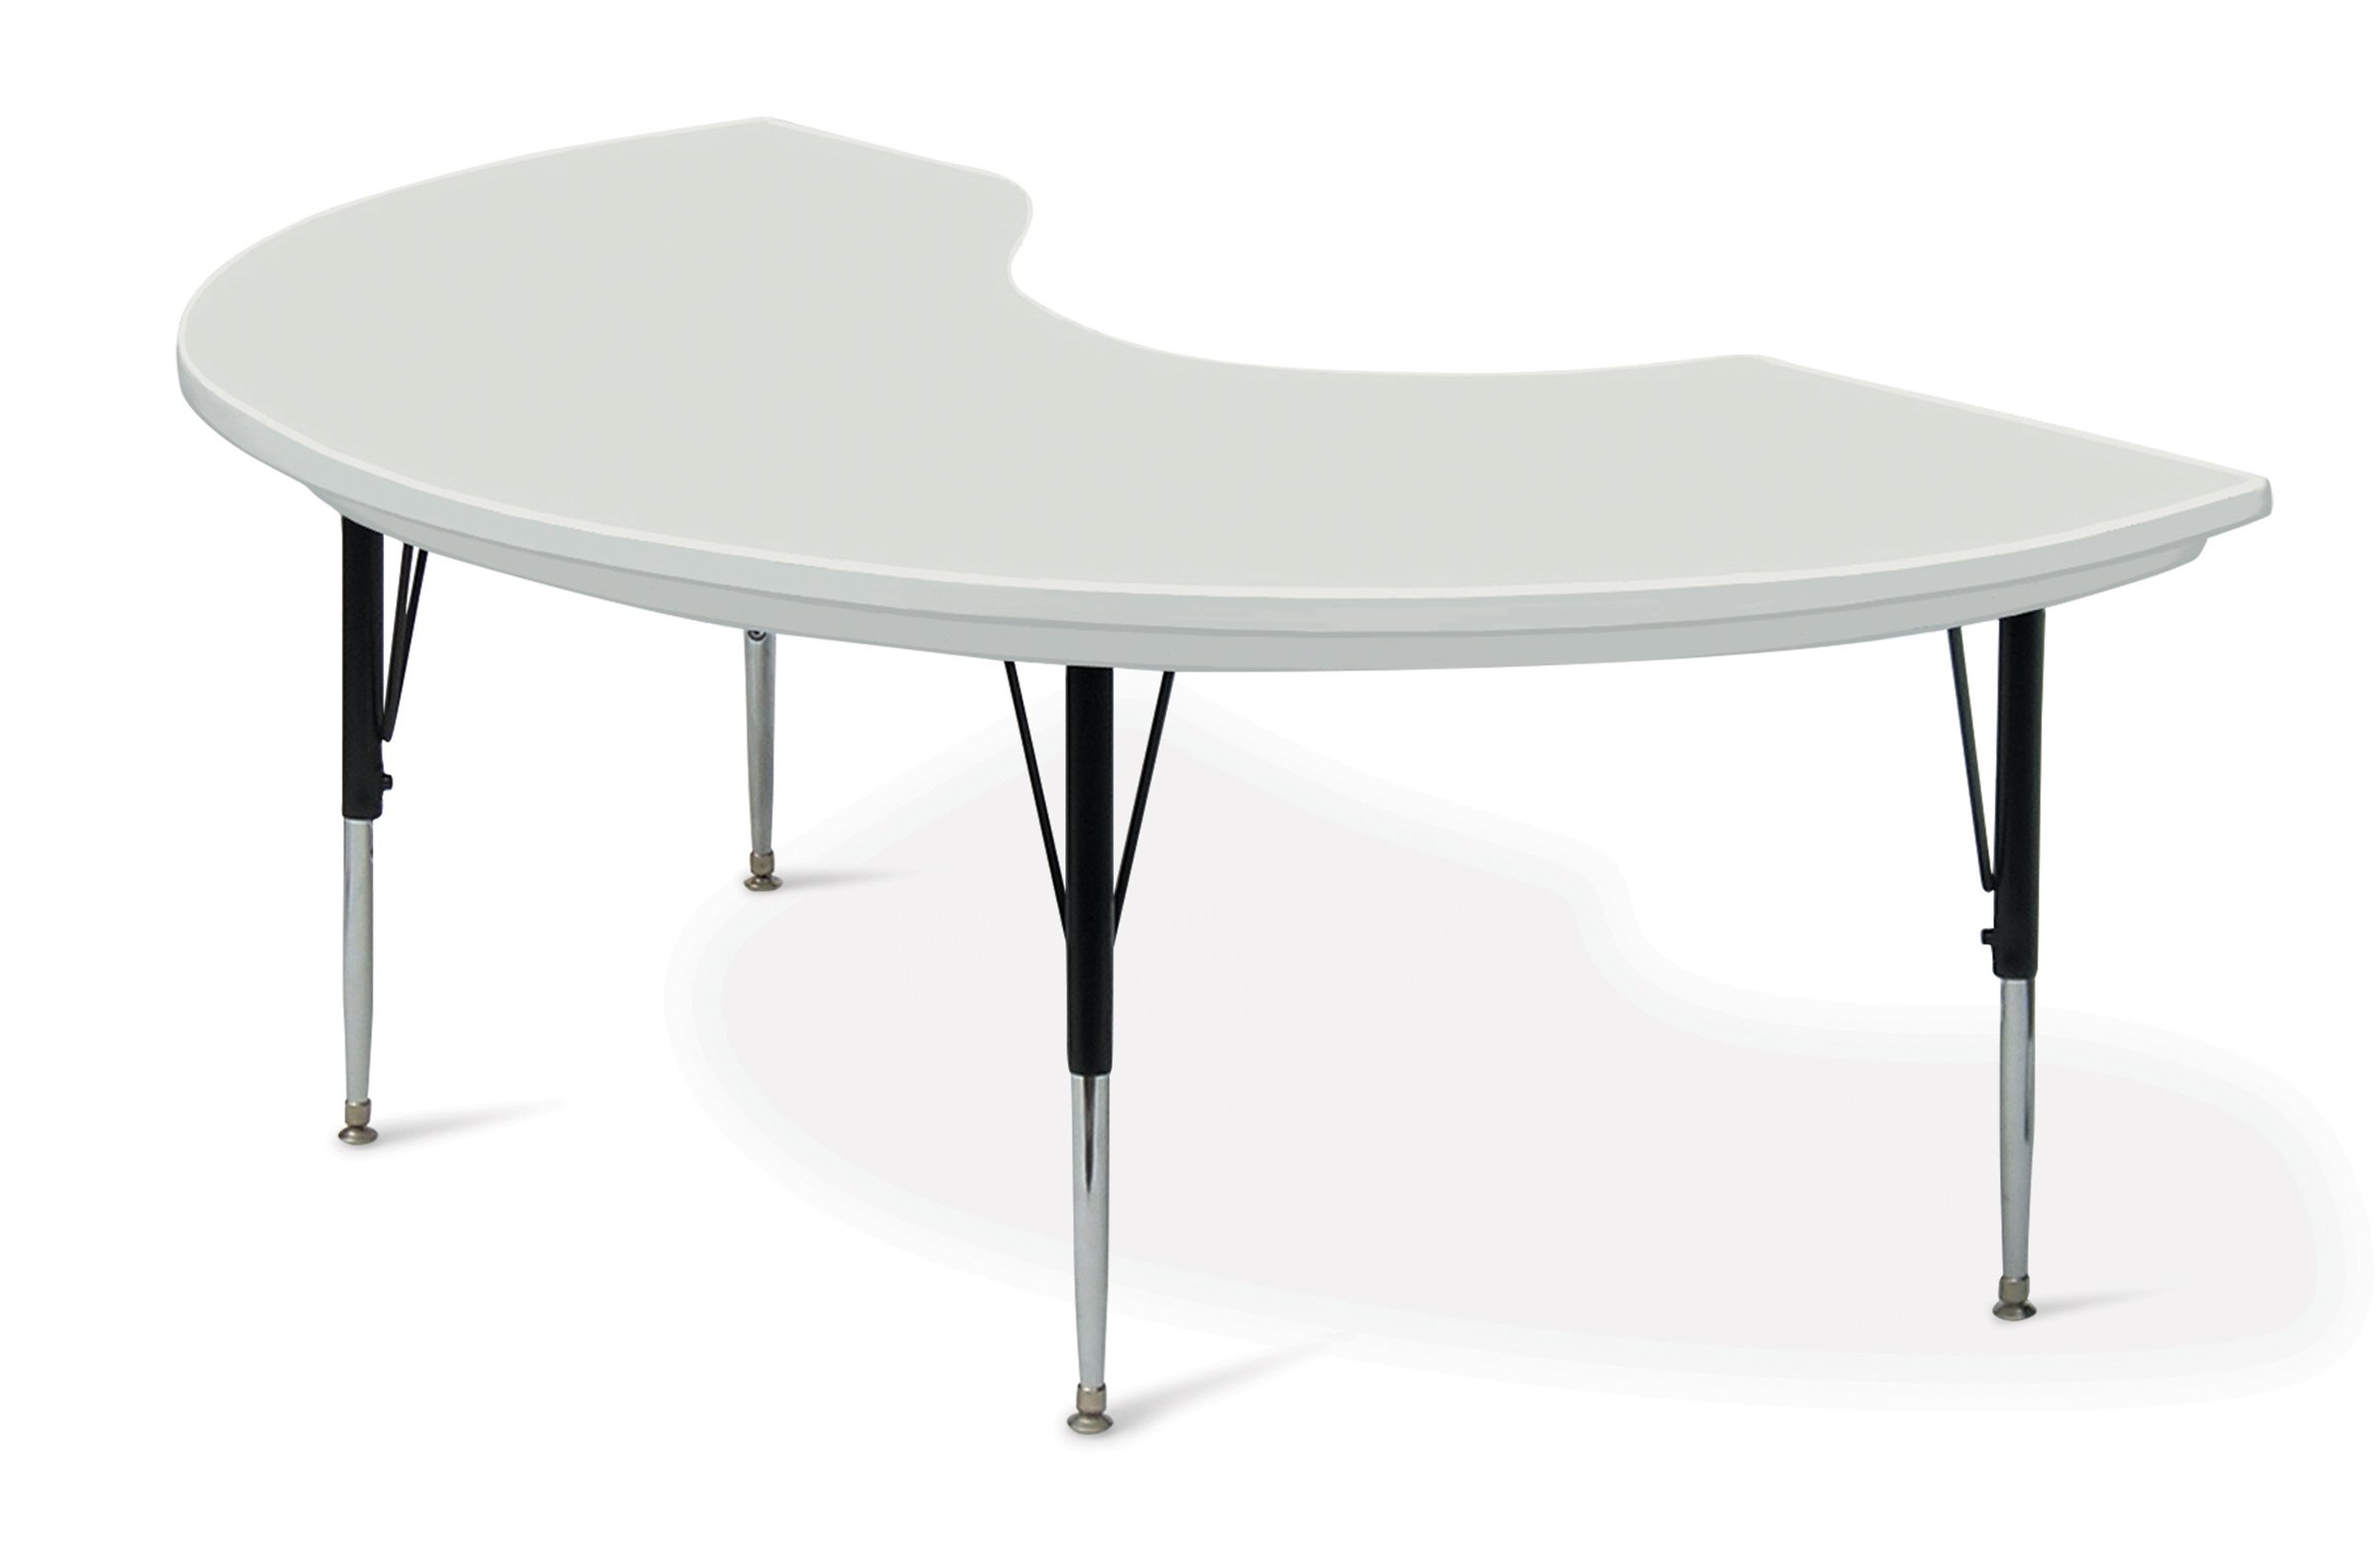 Correll AR4872-KID-23 Kidney-Shaped Resin Activity Table, 48'' x 72'', Gray Granite